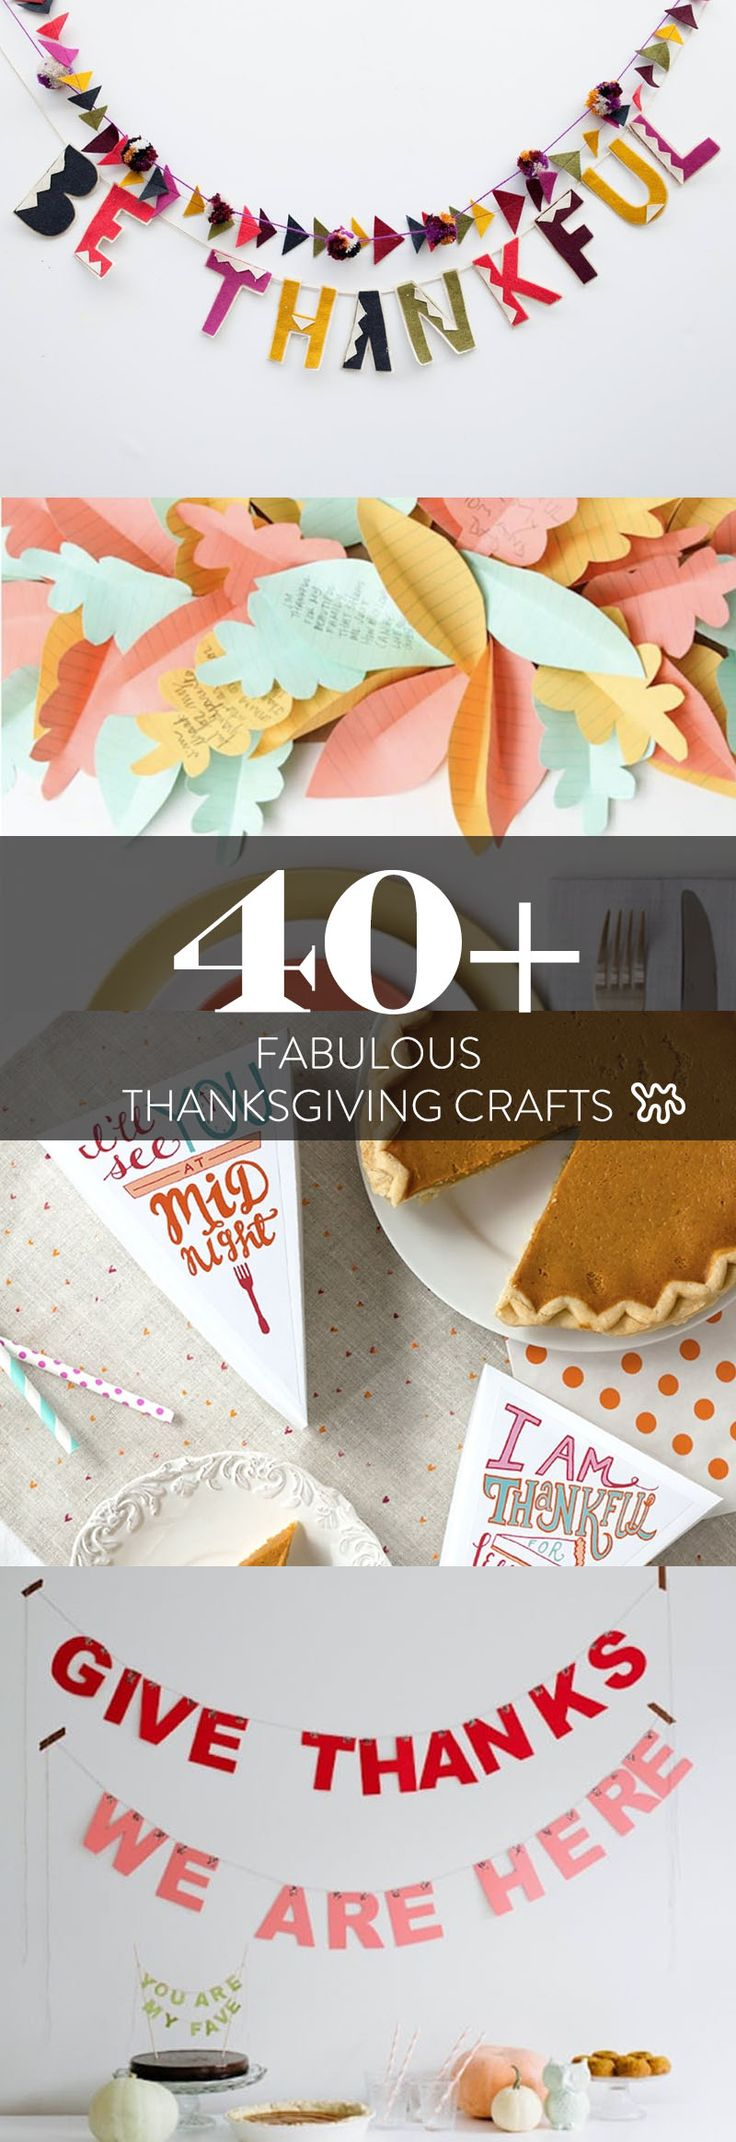 Colder weather is here and Thanksgiving is coming up. Now is the perfect time to hunker down inside with some spiced—ahem, spiked—cider and get started on some Thanksgiving crafting. These 40 projects, from turkey leg balloons and pine cone drink stirrers to pie slice garlands and gold-leafed wishbones, will infuse your home and table with warmth and cheer.